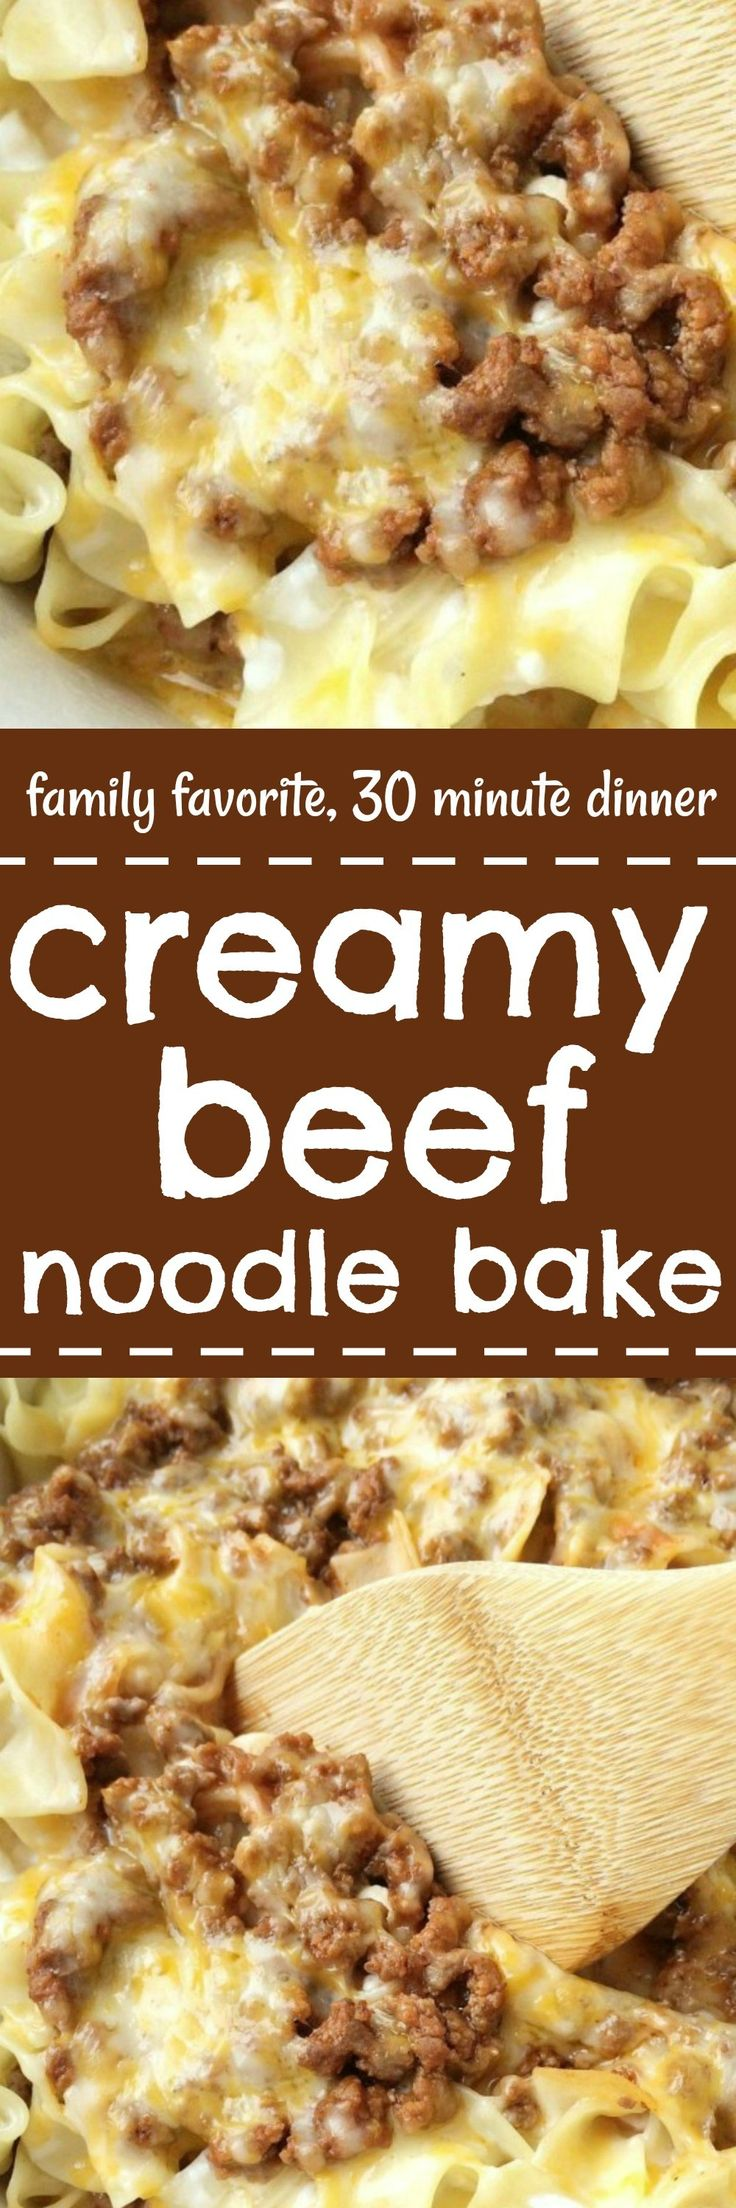 Creamy Beef Noodle Bake - Tender egg noodles, melty cheese, and a creamy tomato ground beef mixture make for one amazing, and family-friendly dinner! The entire family will love this simple and easy creamy beef noodle bake. It's a family favorite that can be on the dinner table in 30 minutes. Perfect for a busy weeknight and back-to-school dinner | togetherasfamily.com